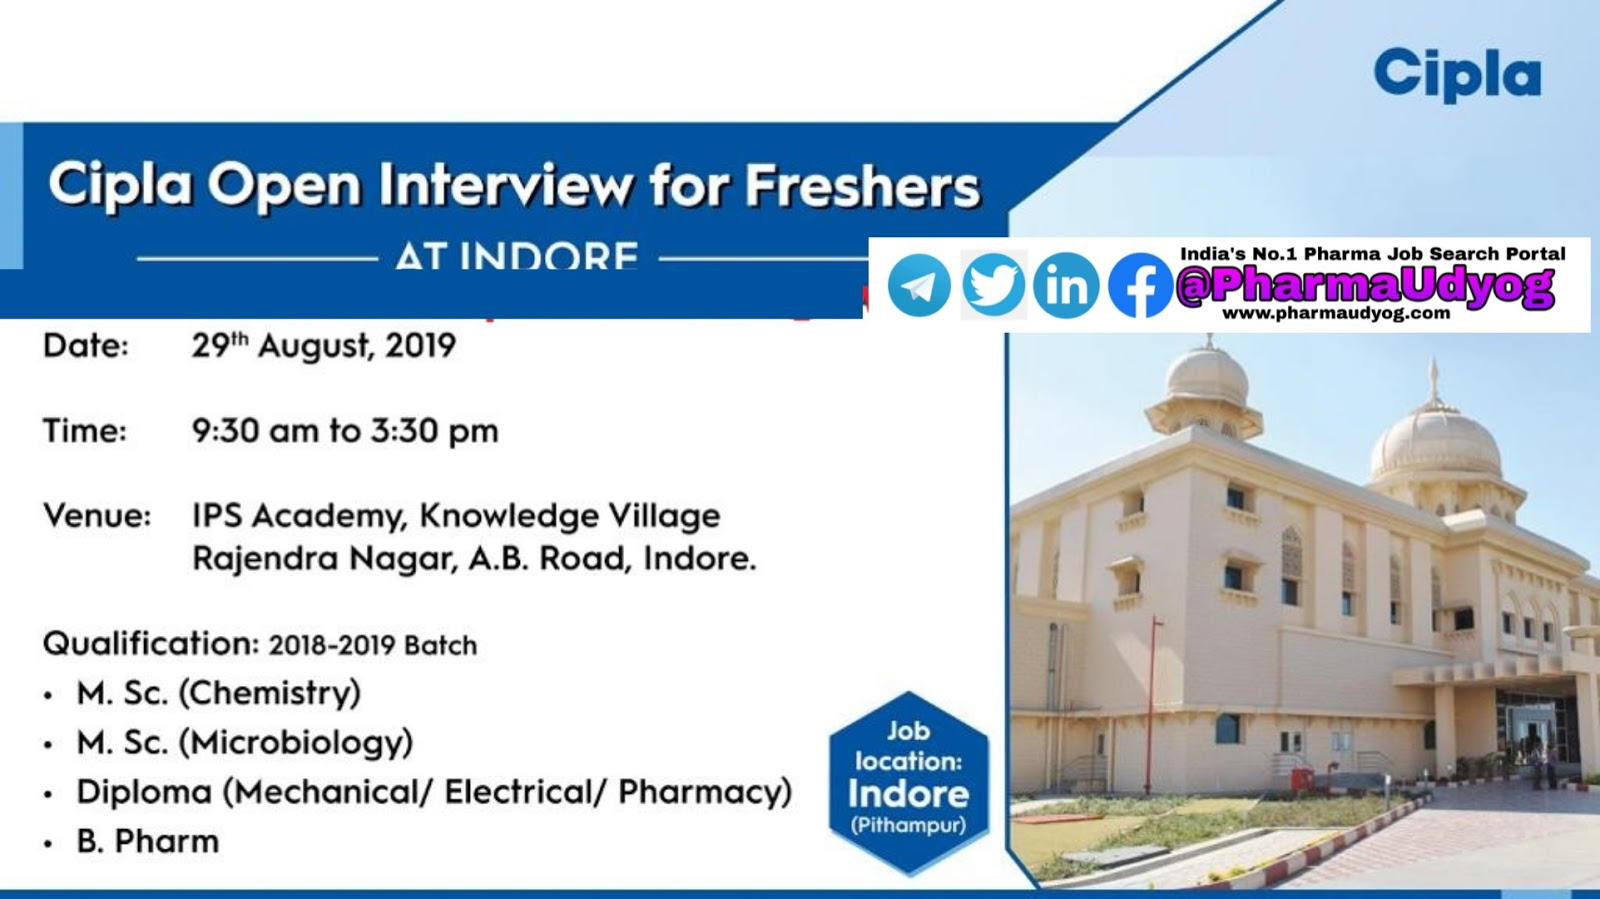 Cipla | Walk-in interview for Freshers | 29 August 2019 | Indore